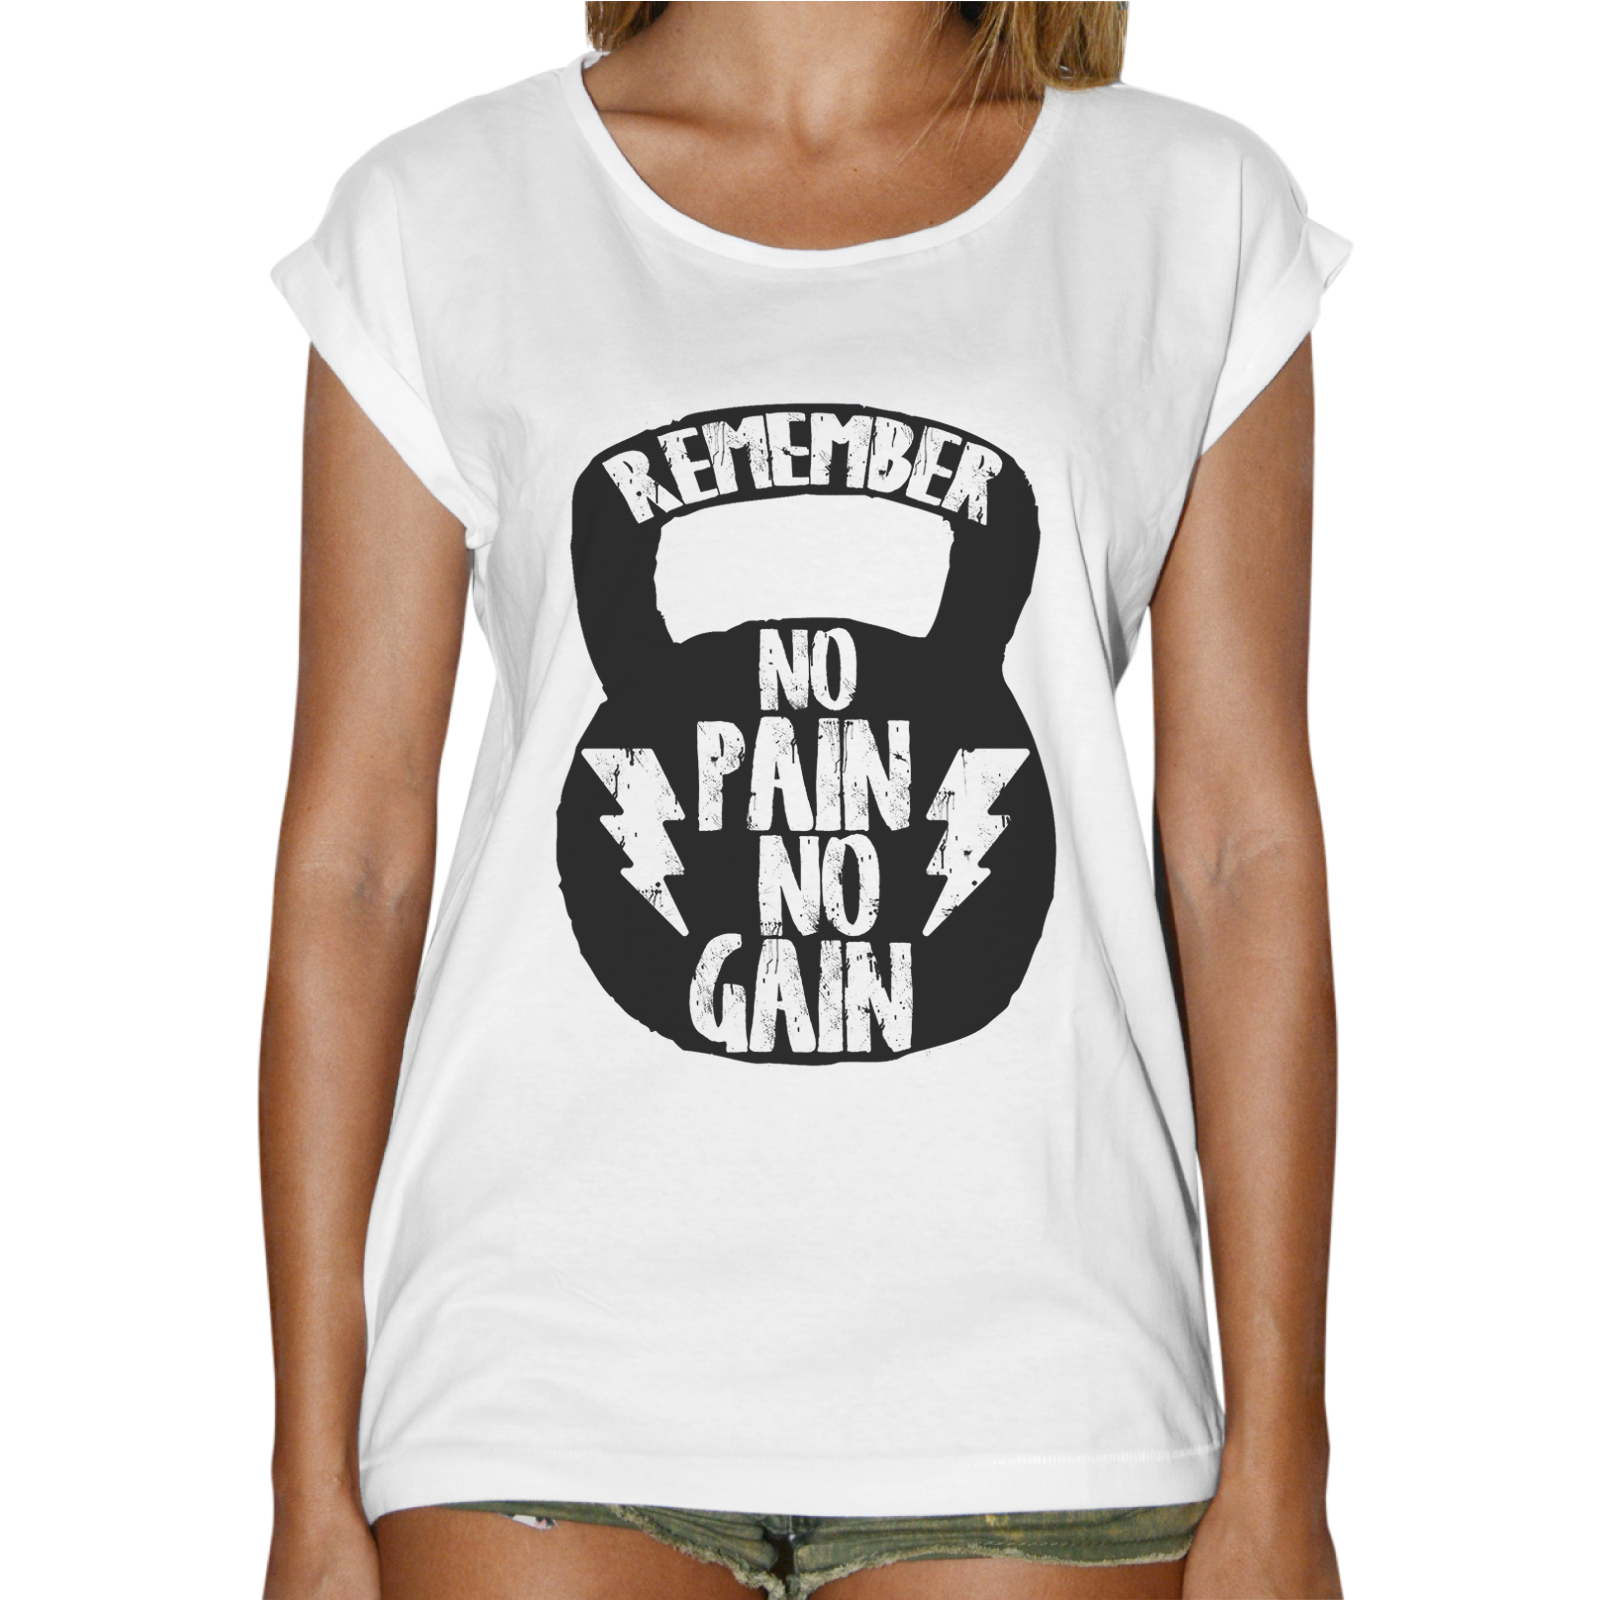 T-Shirt Donna Fashion NO PAIN NO GAIN